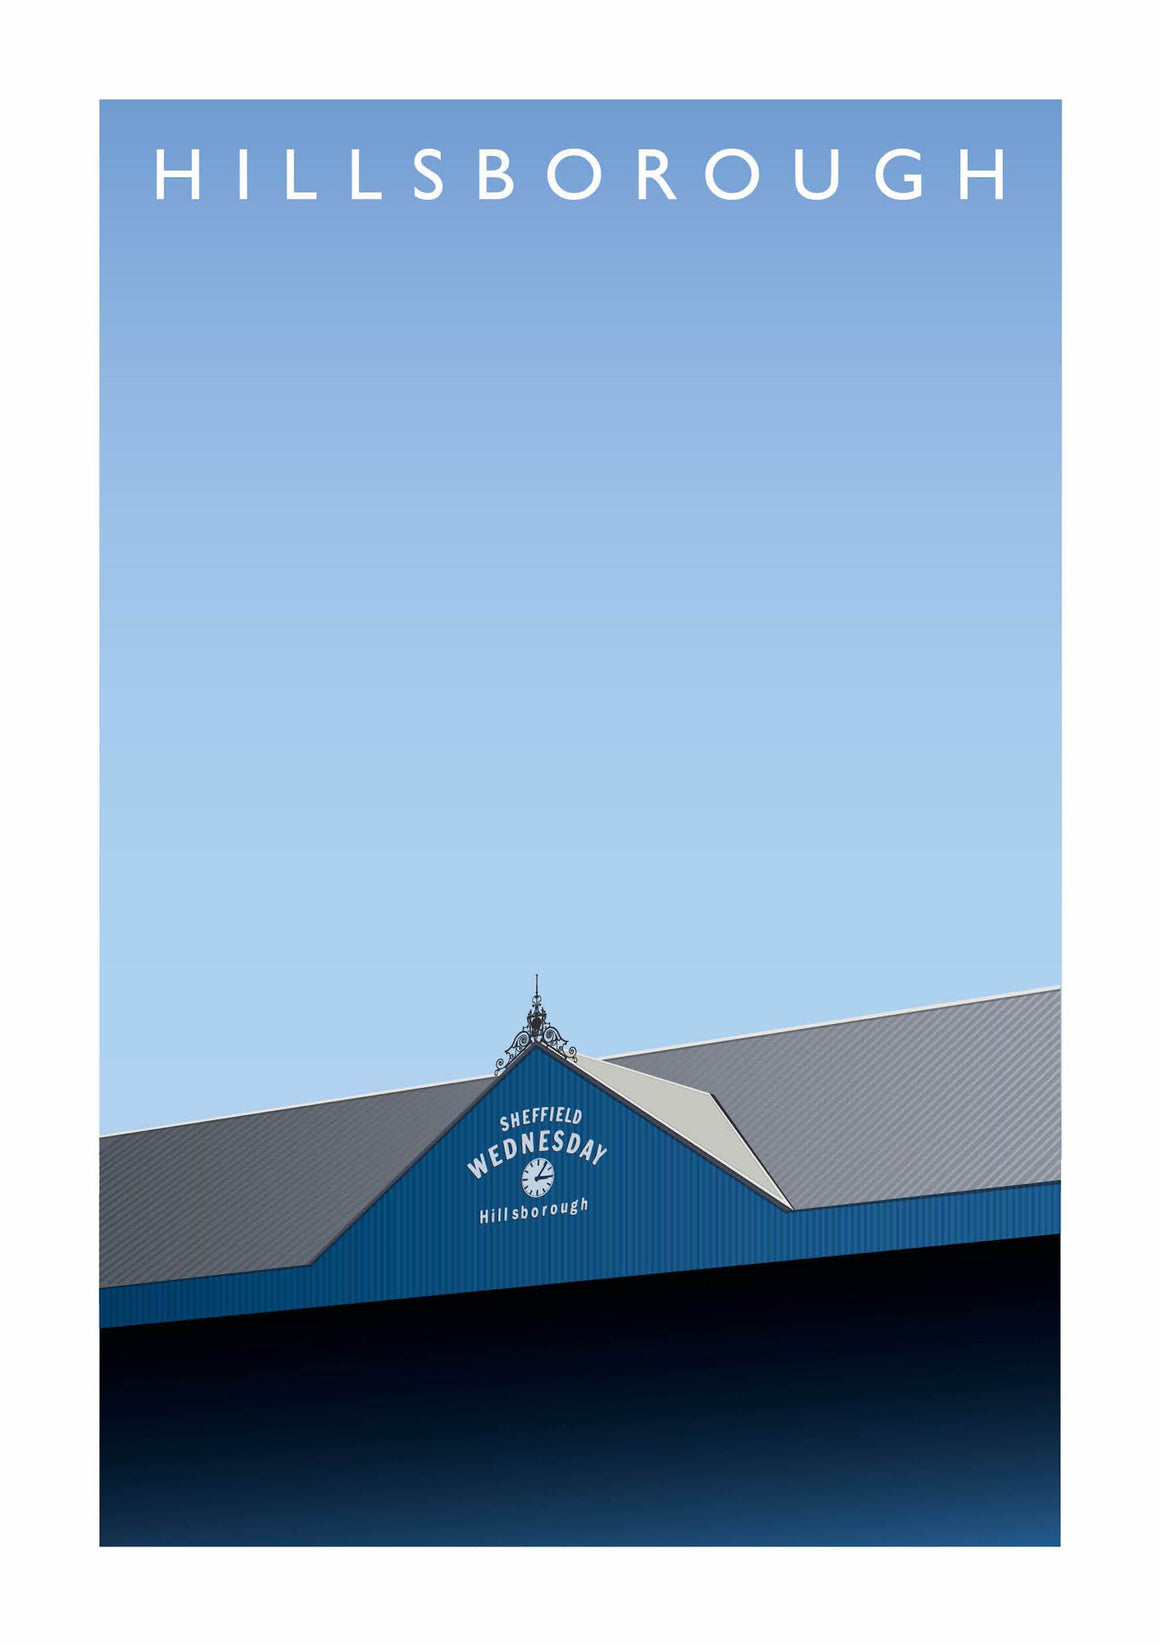 Matthew J I Wood Illustrated poster of Sheffield Wednesday ground Hillsborough